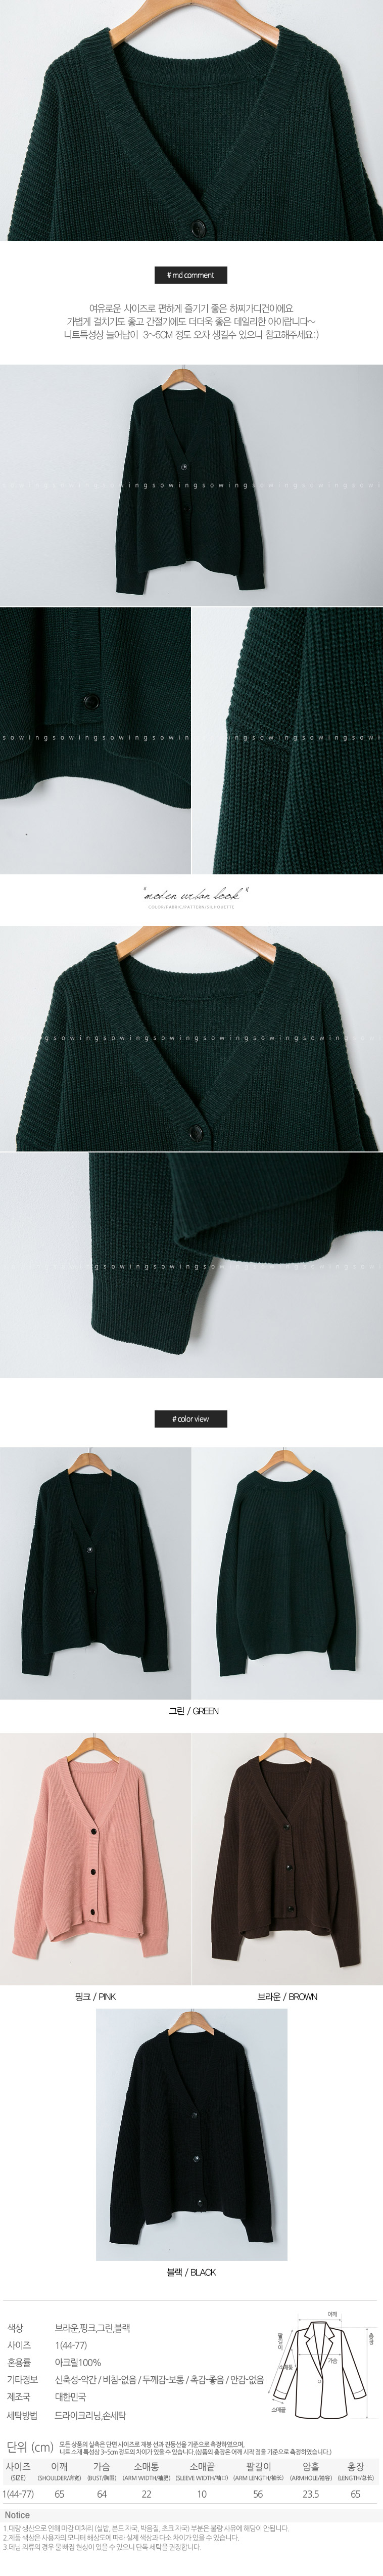 Hat basics cardigan